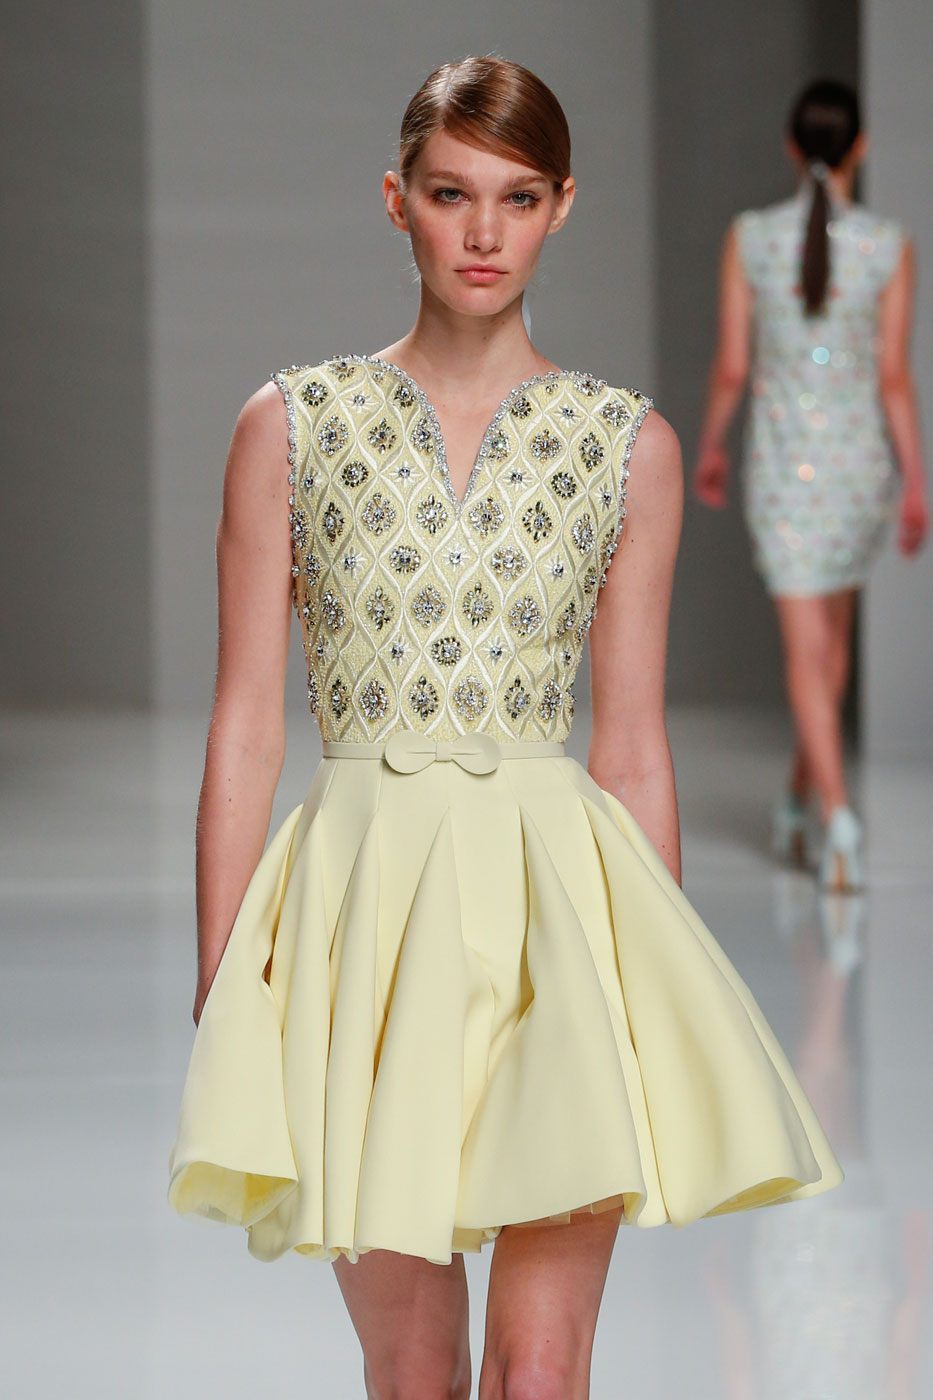 Georges-Hobeika-fashion-runway-show-haute-couture-paris-spring-2015-the-impression-18